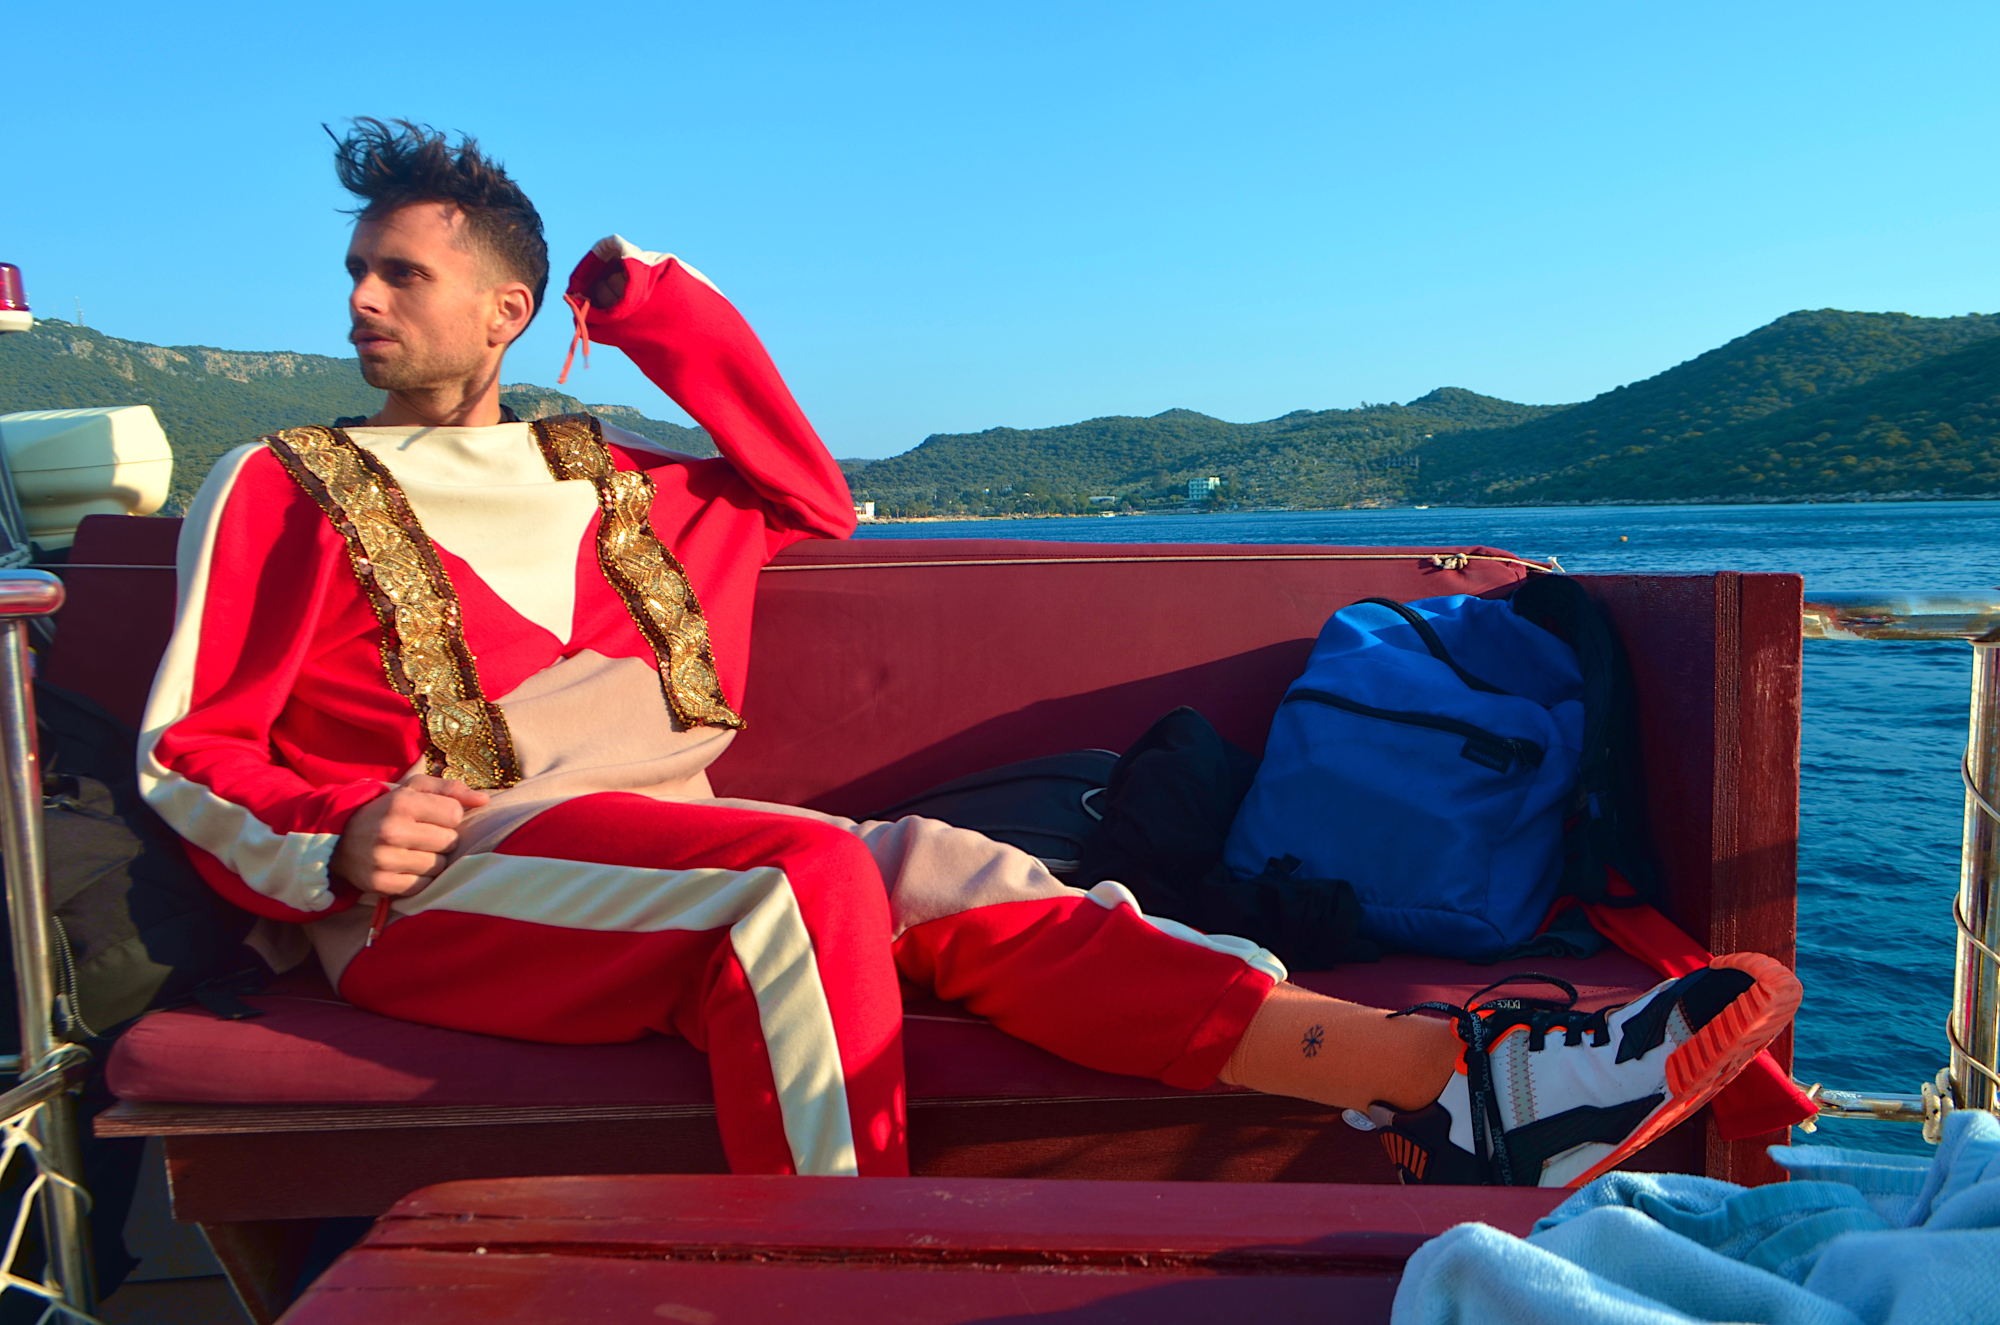 Caleb Garcia Taylor in his matching loungewear sets design: King of Diamonds on a boat in the Mediterranean sea.